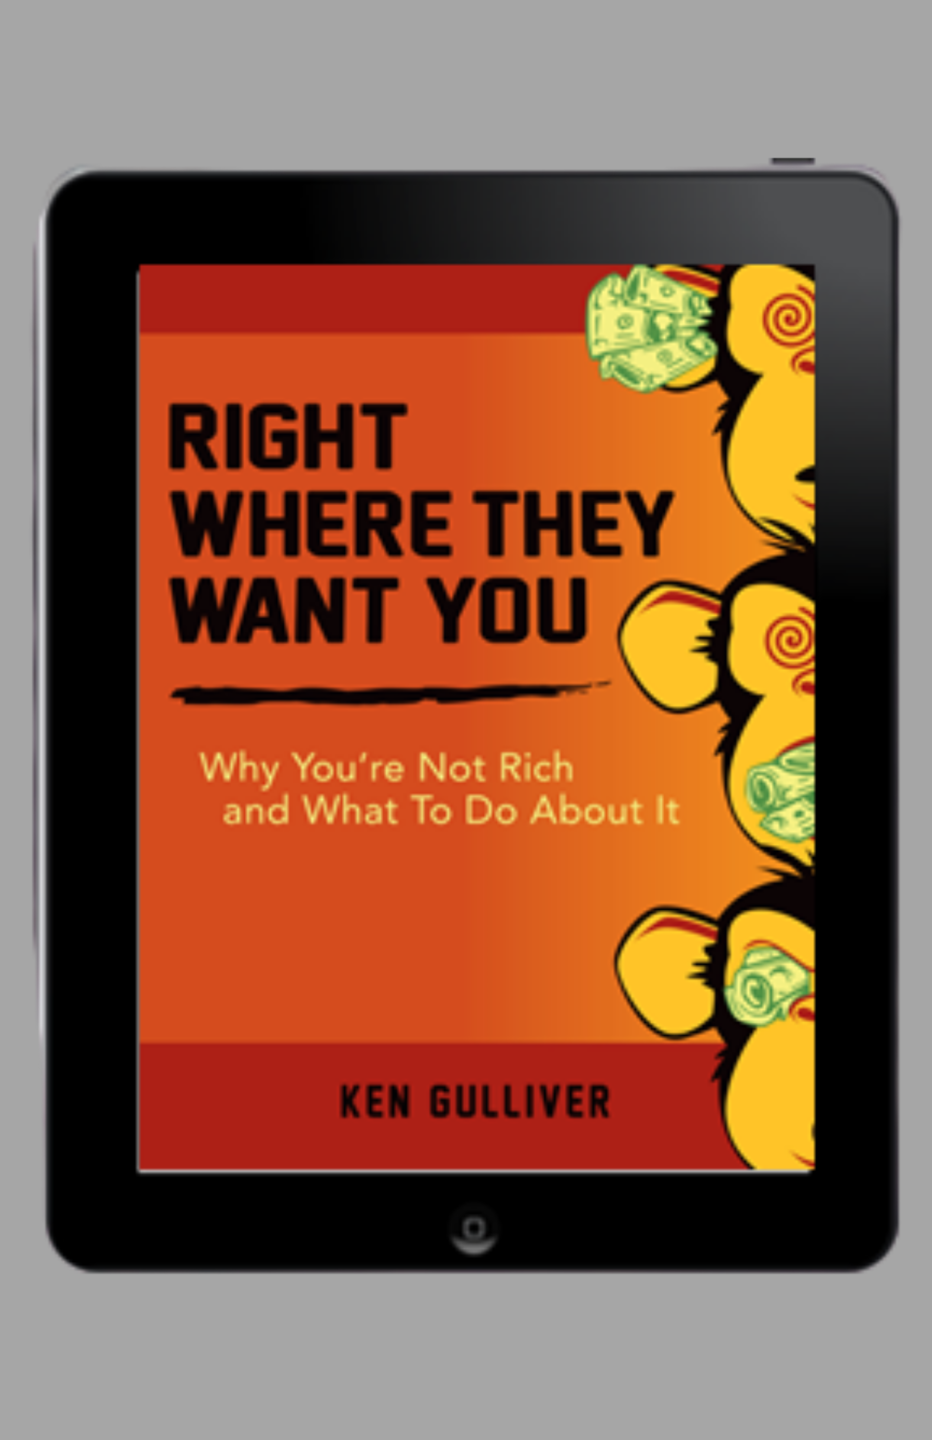 FREE Digital Book: Right Where They Want You